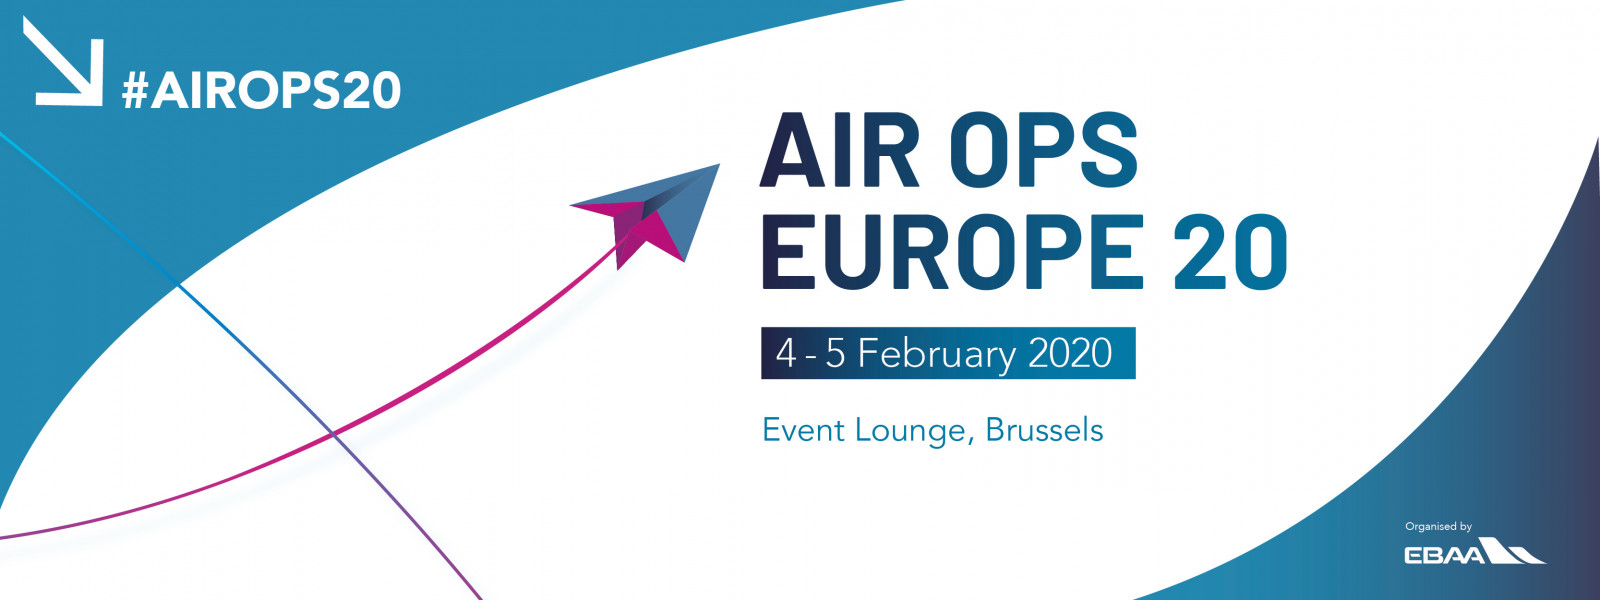 Air Ops Europe 20